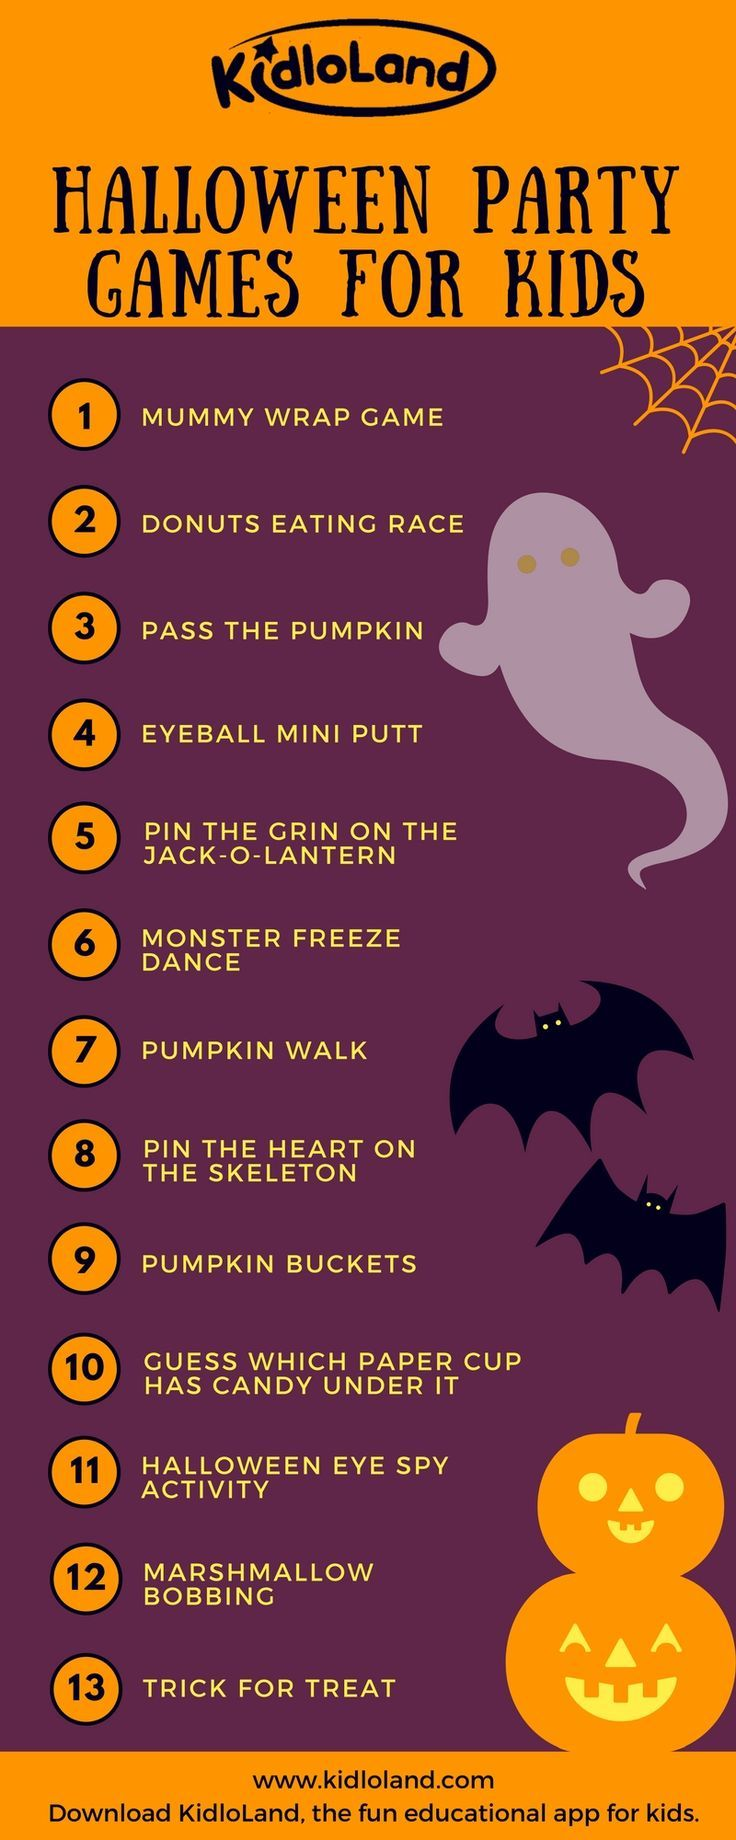 13 Fun Halloween Party Games For Kids | Halloween ideas, Halloween ...